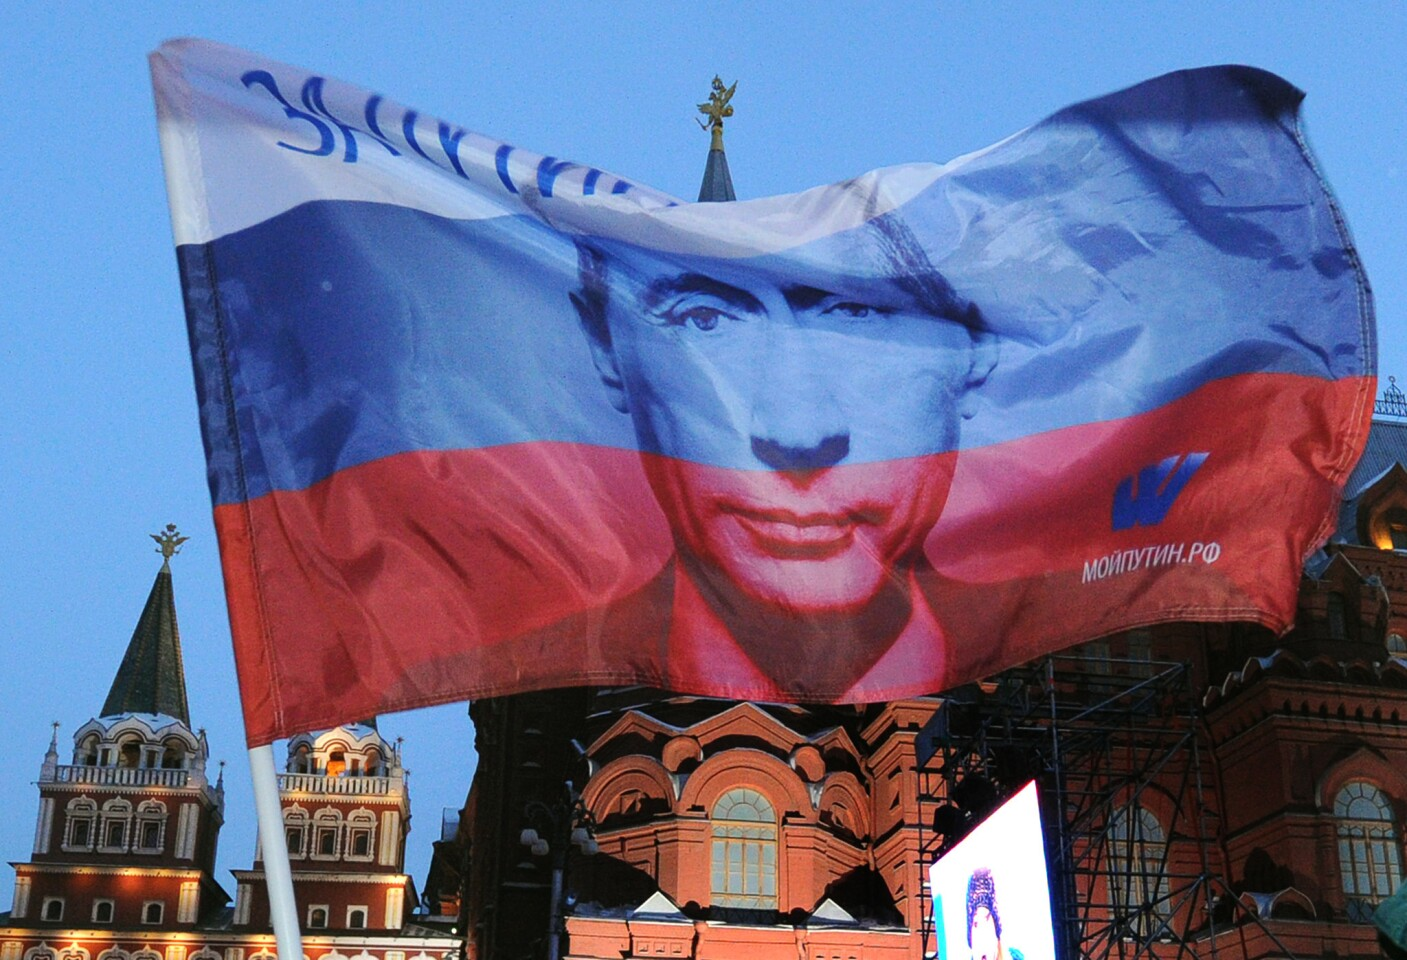 A Russian flag featuring Prime Minister Vladimir Putin flies above his supporters at a square just outside the Kremlin in Moscow as they celebrate Putin's election on March 5, 2012. Putin regained the presidency after four years as prime minister.